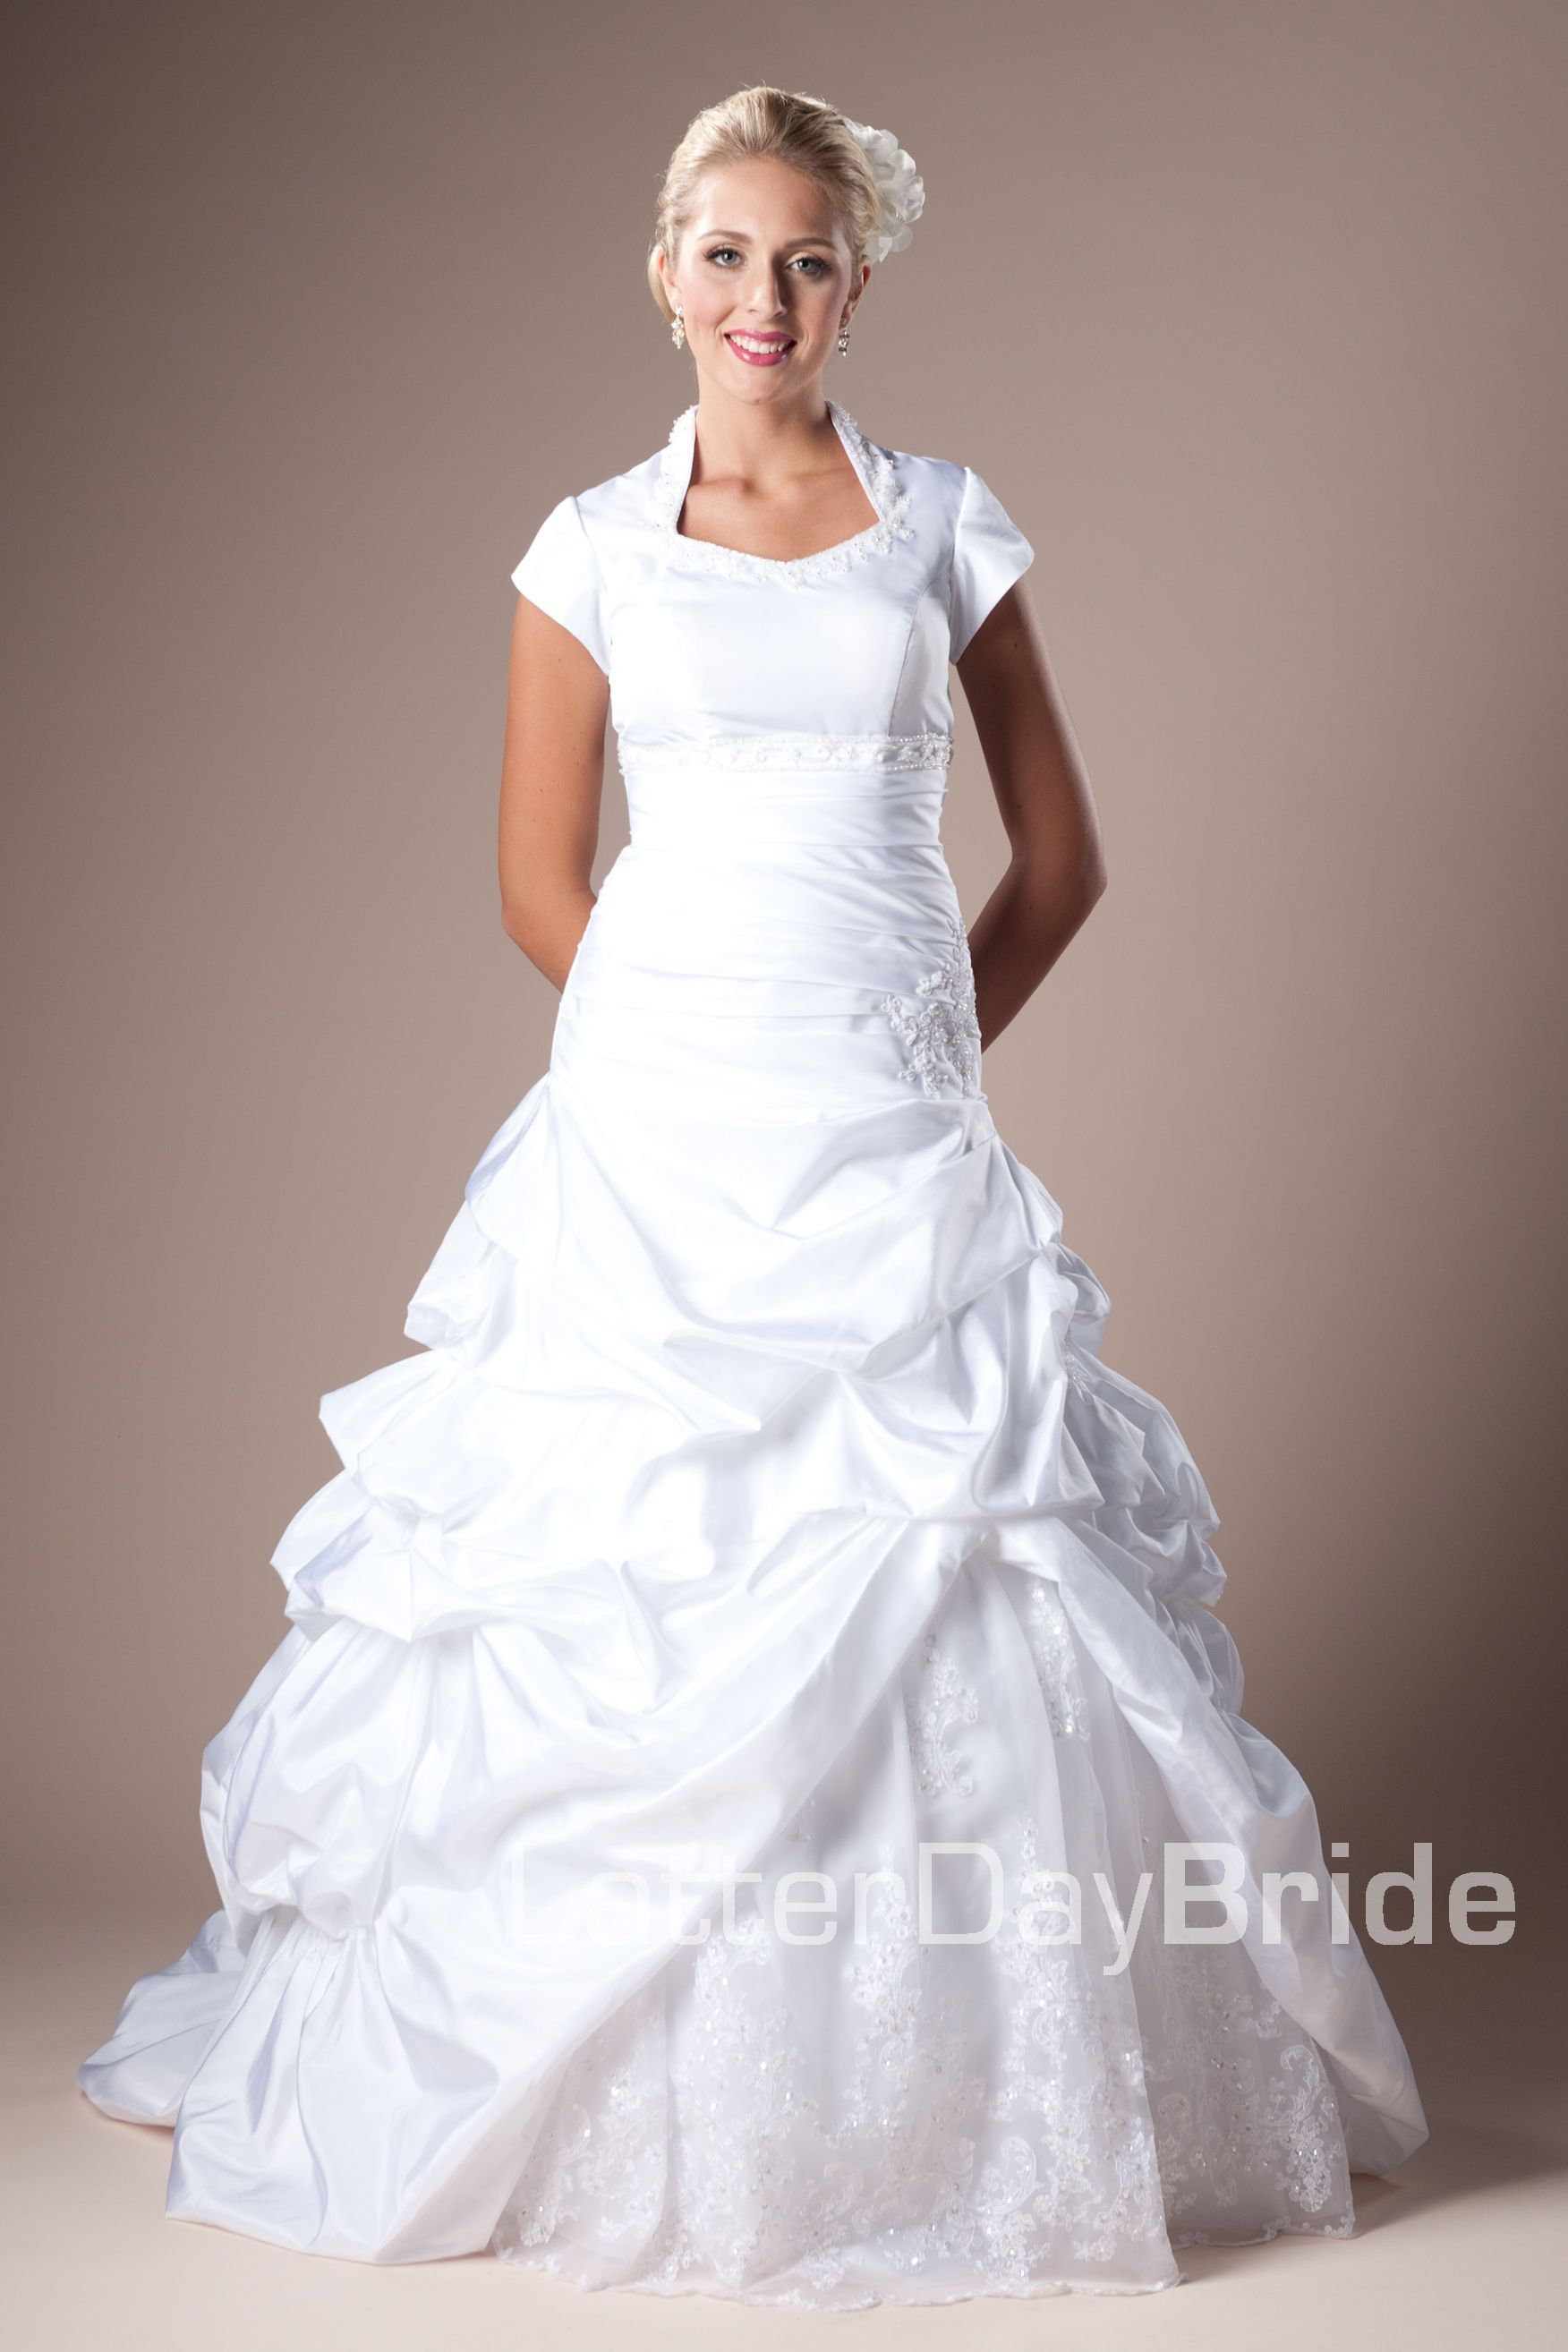 Modest Wedding Dress, Brighton | LatterDayBride & Prom. Modest Mormon LDS Temple Dress